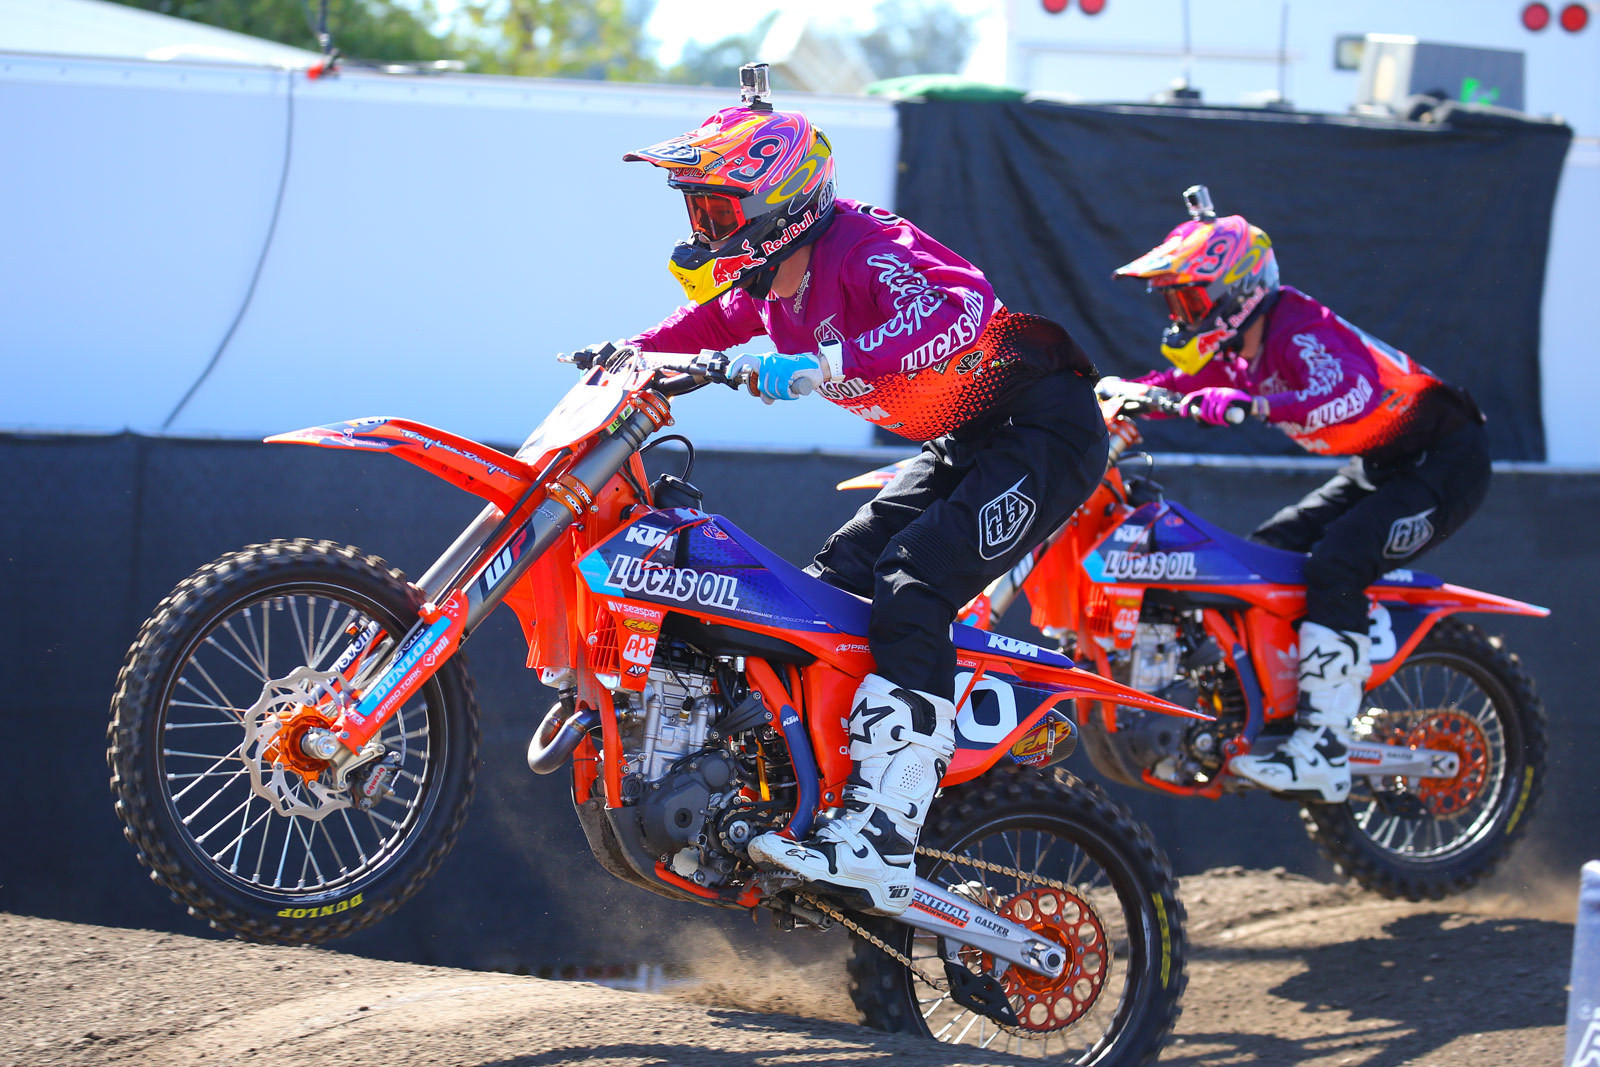 Shane McElrath and Jessy Nelson - Photo Blast: Red Bull Straight Rhythm - Motocross Pictures - Vital MX